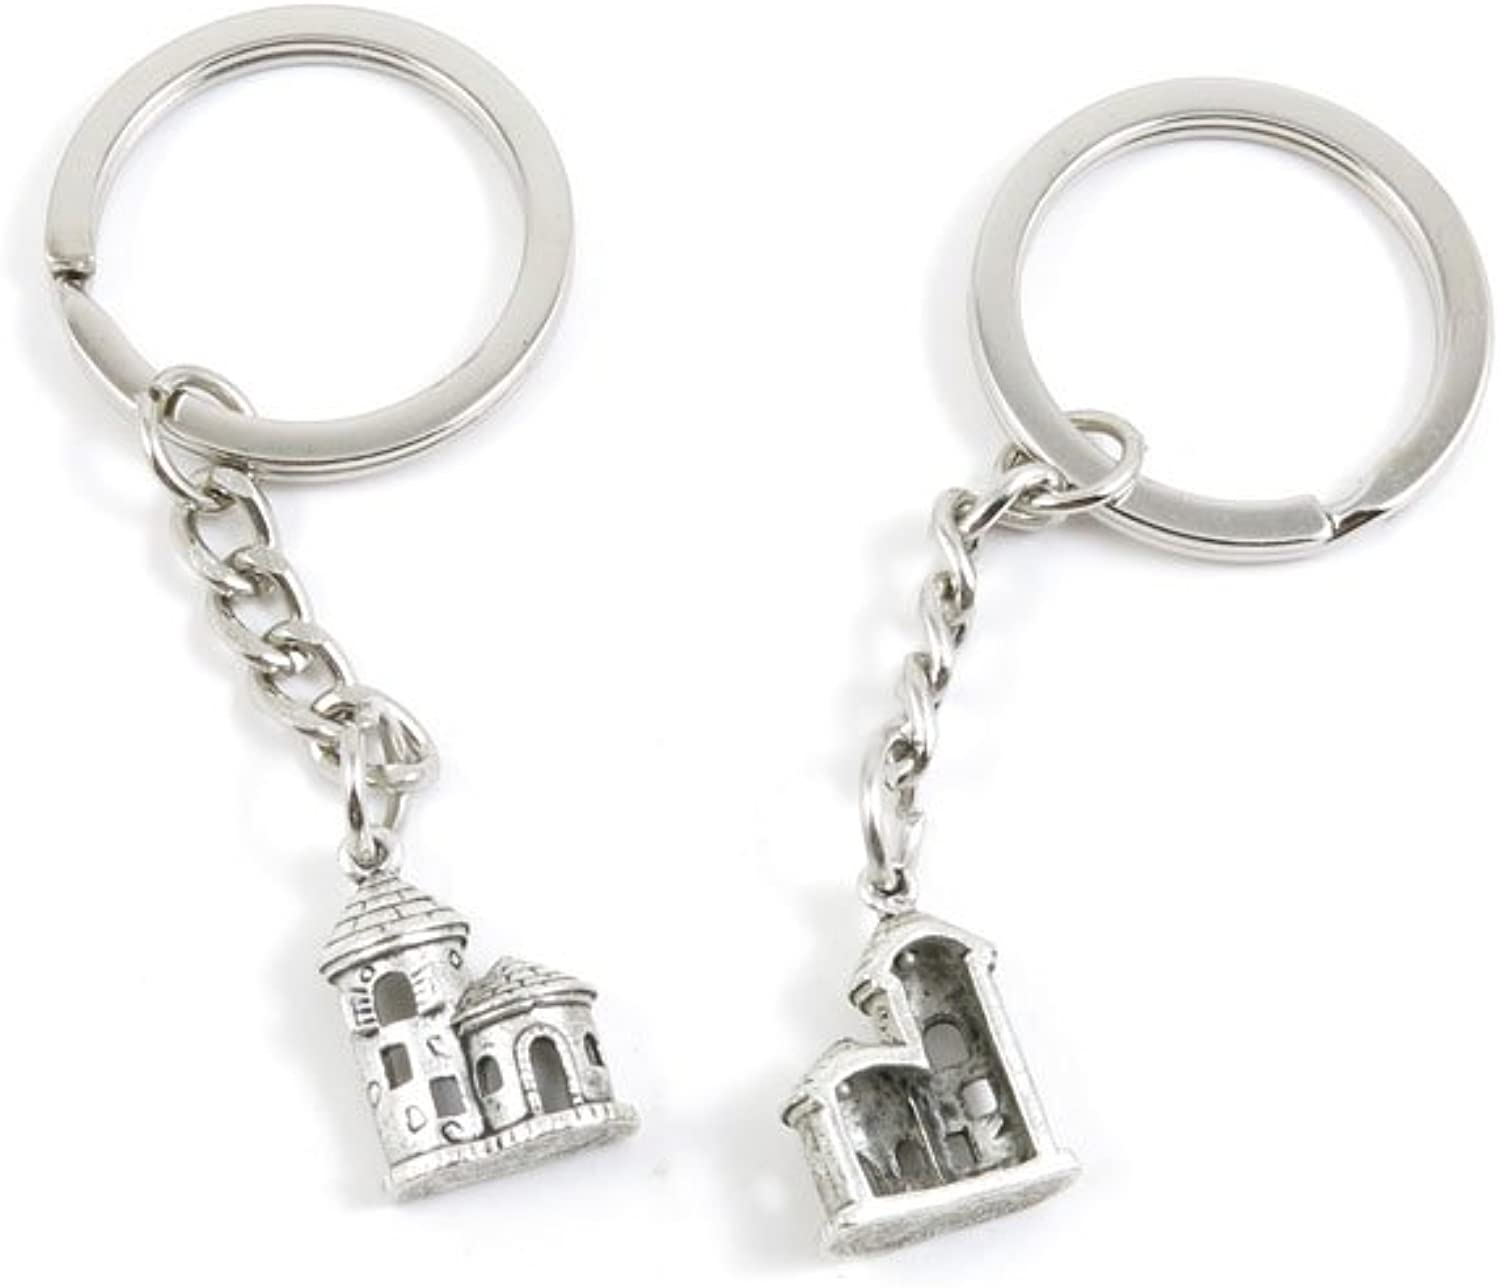 190 Pieces Fashion Jewelry Keyring Keychain Door Car Key Tag Ring Chain Supplier Supply Wholesale Bulk Lots B5TC2 Castle